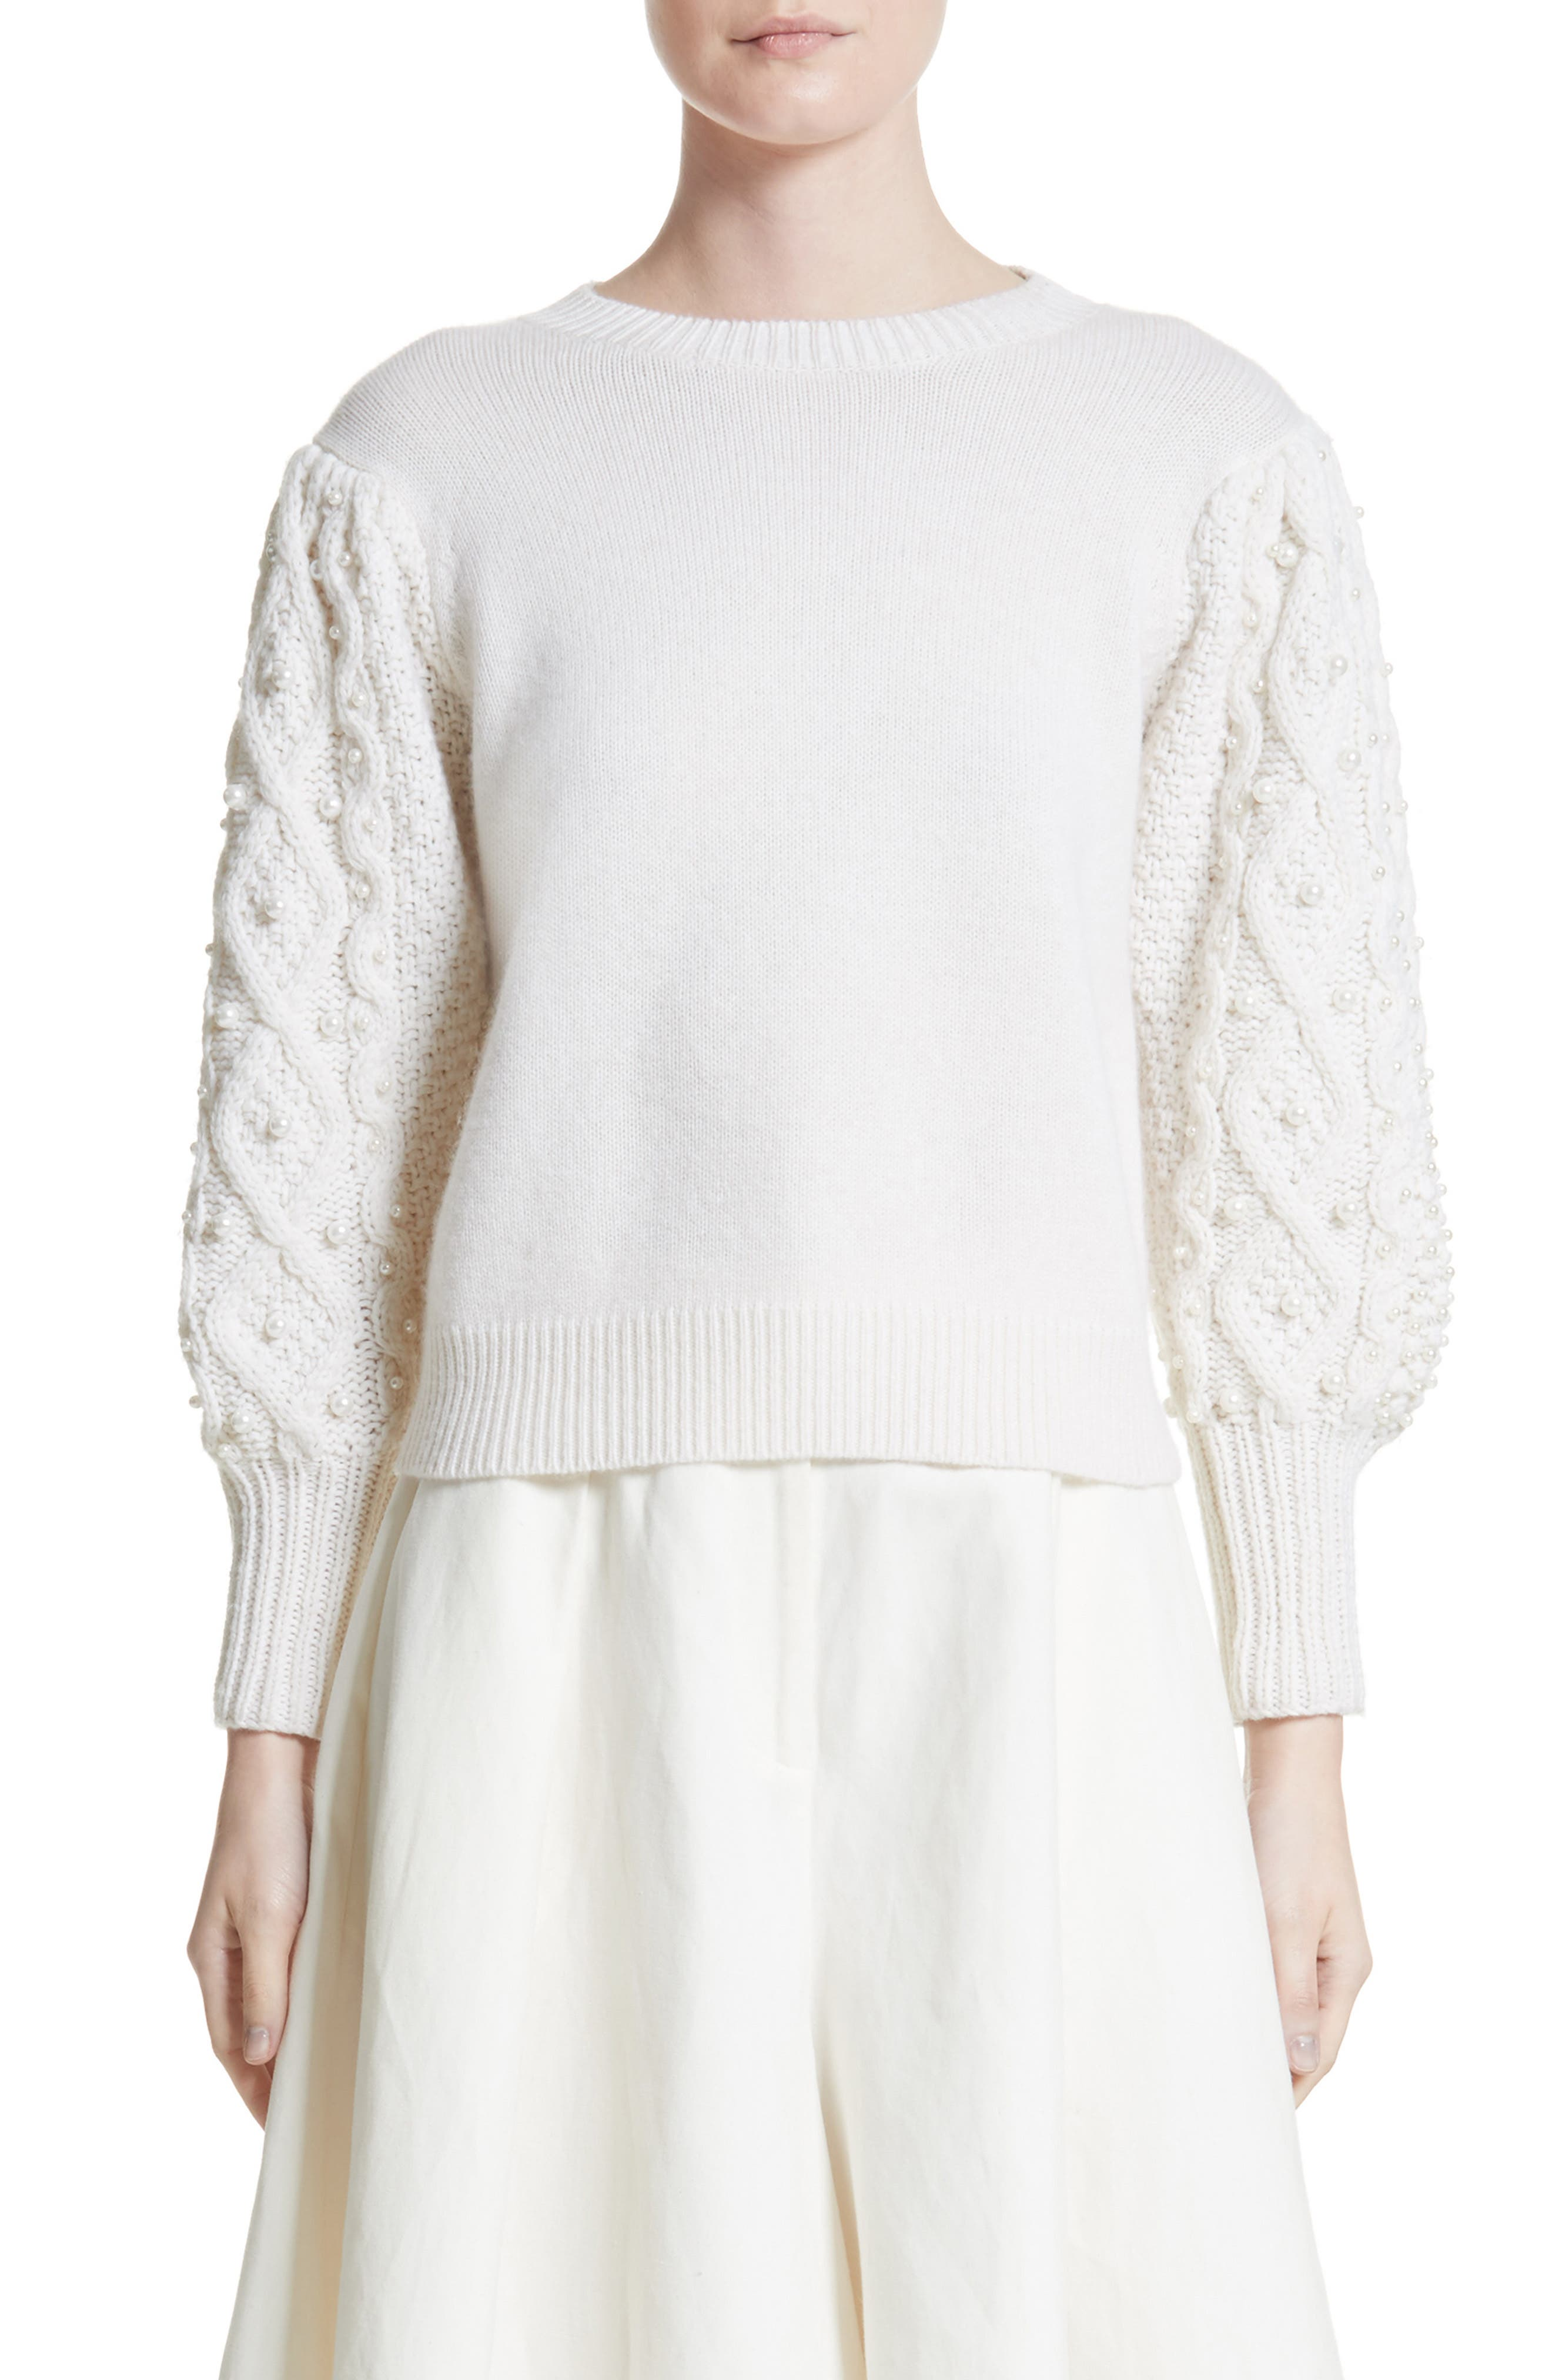 Imitation Pearl Embellished Wool & Cashmere Sweater,                             Main thumbnail 1, color,                             Ivory